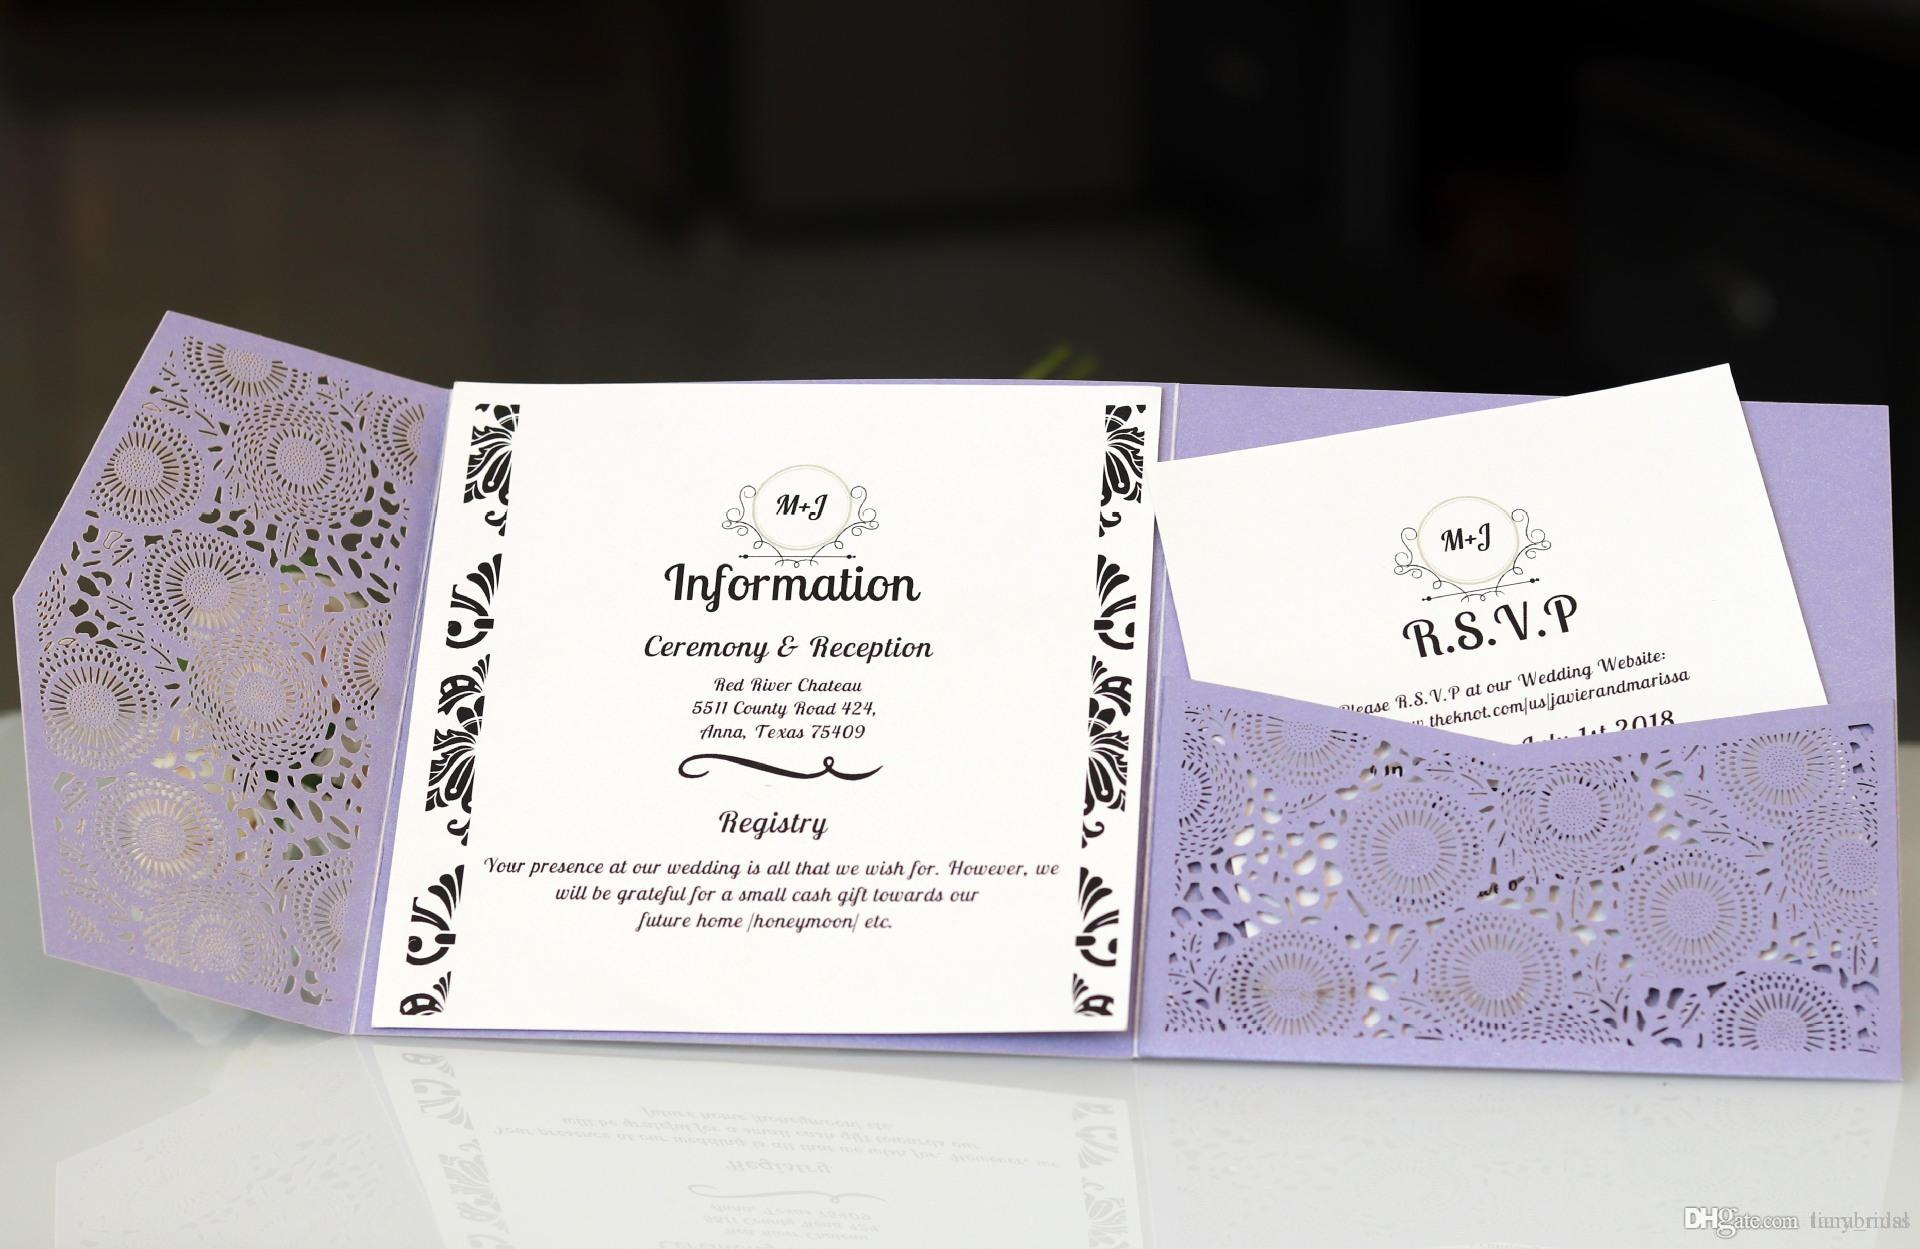 Light Purple Folded Laser Cut Invitations Cards With Rsvp White Pearl Paper Invite Card Stock For Birthday Party Supply Online Wedding Invitation: Purple Wedding Invitation Card At Websimilar.org